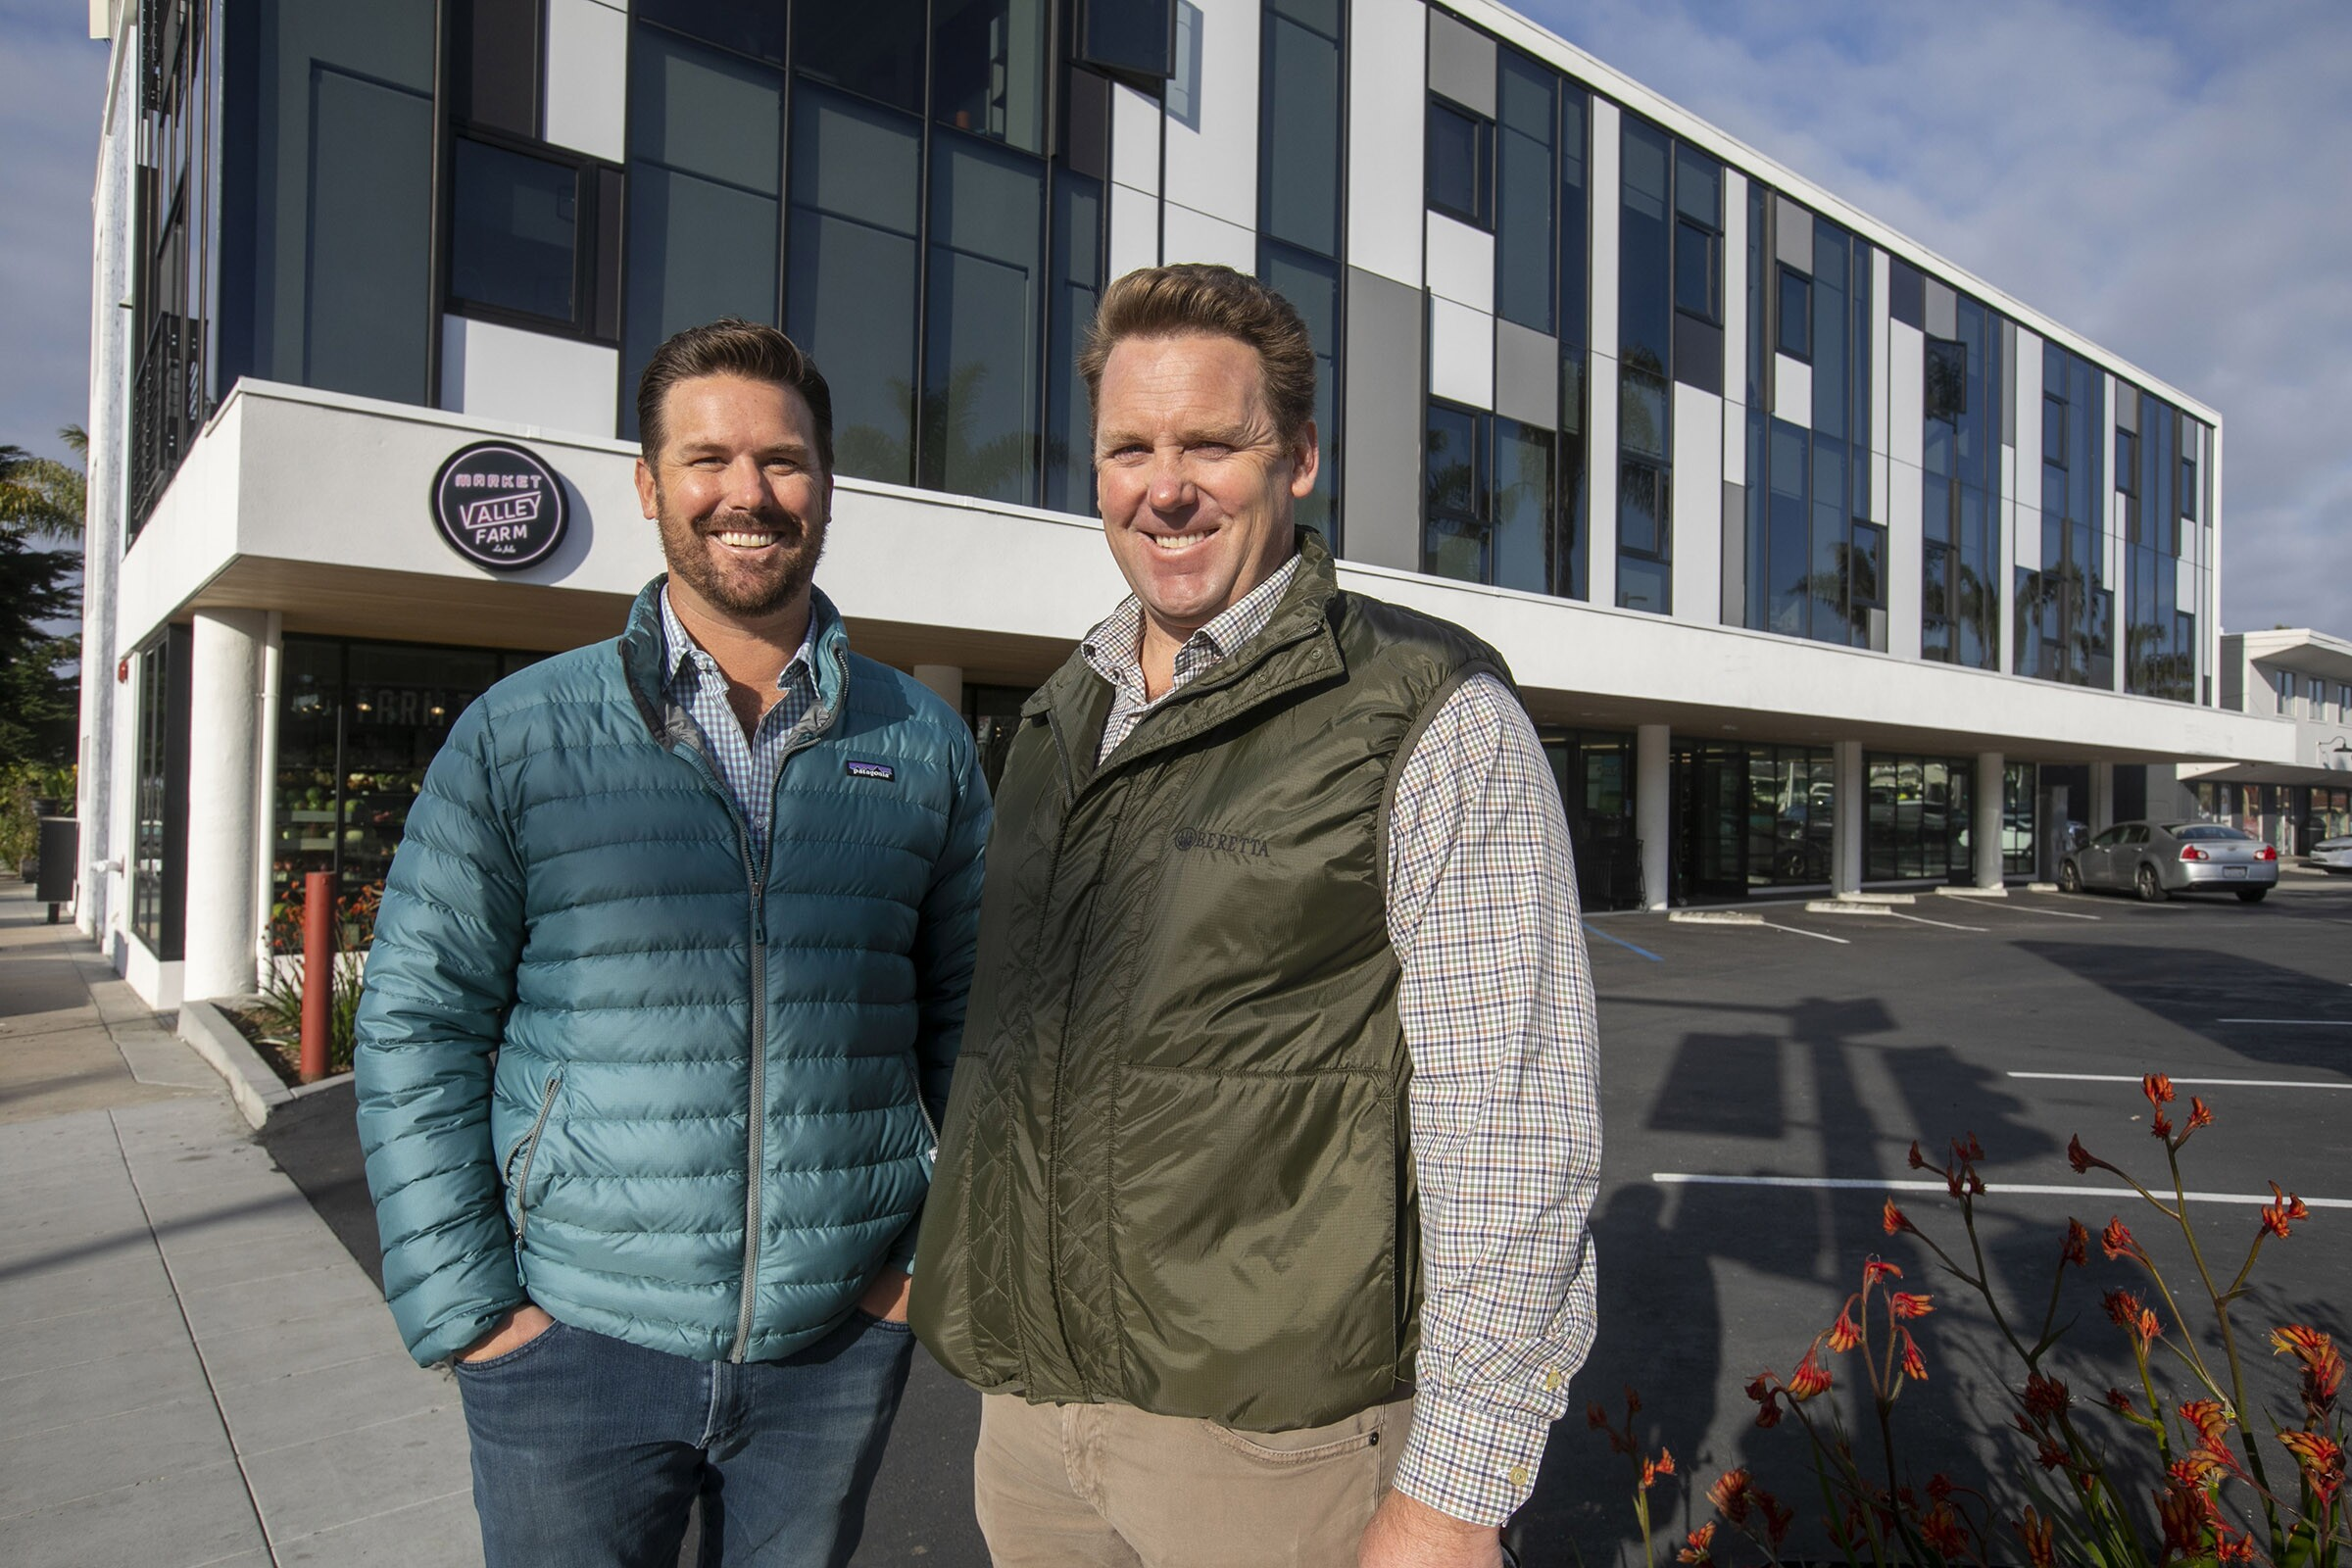 Developers Scott Murfey, right, and his brother Russ Murfey , left, outside of their recently completed Collins luxury apartment complex on La Jolla Boulevard.